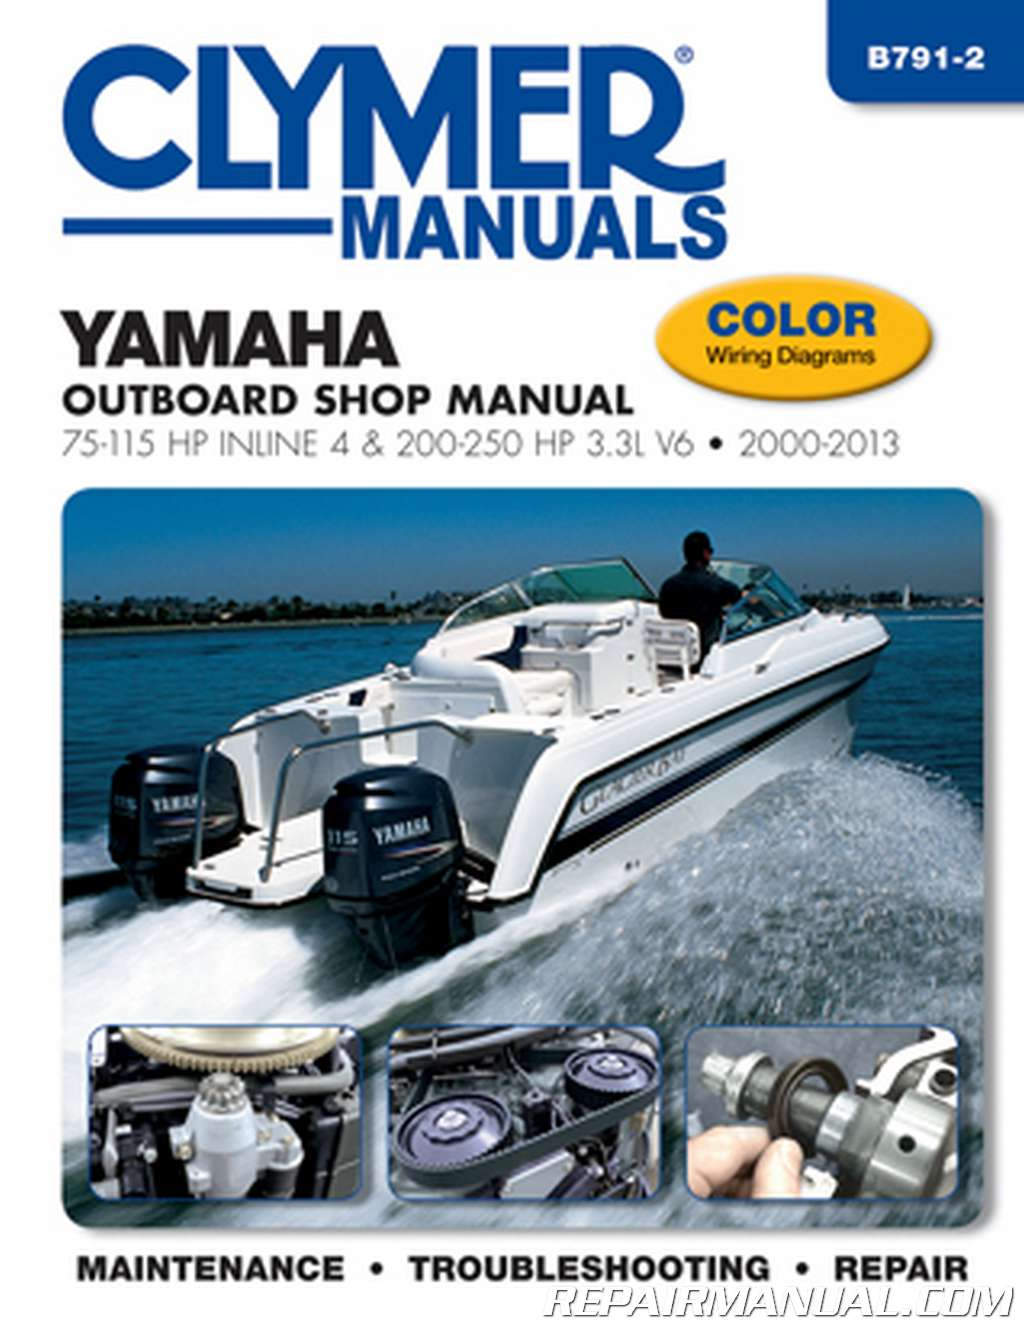 2000-2013 Yamaha Outboard Shop Manual 75-115 HP Inline 4 and 200-250 HP  3.3L V6